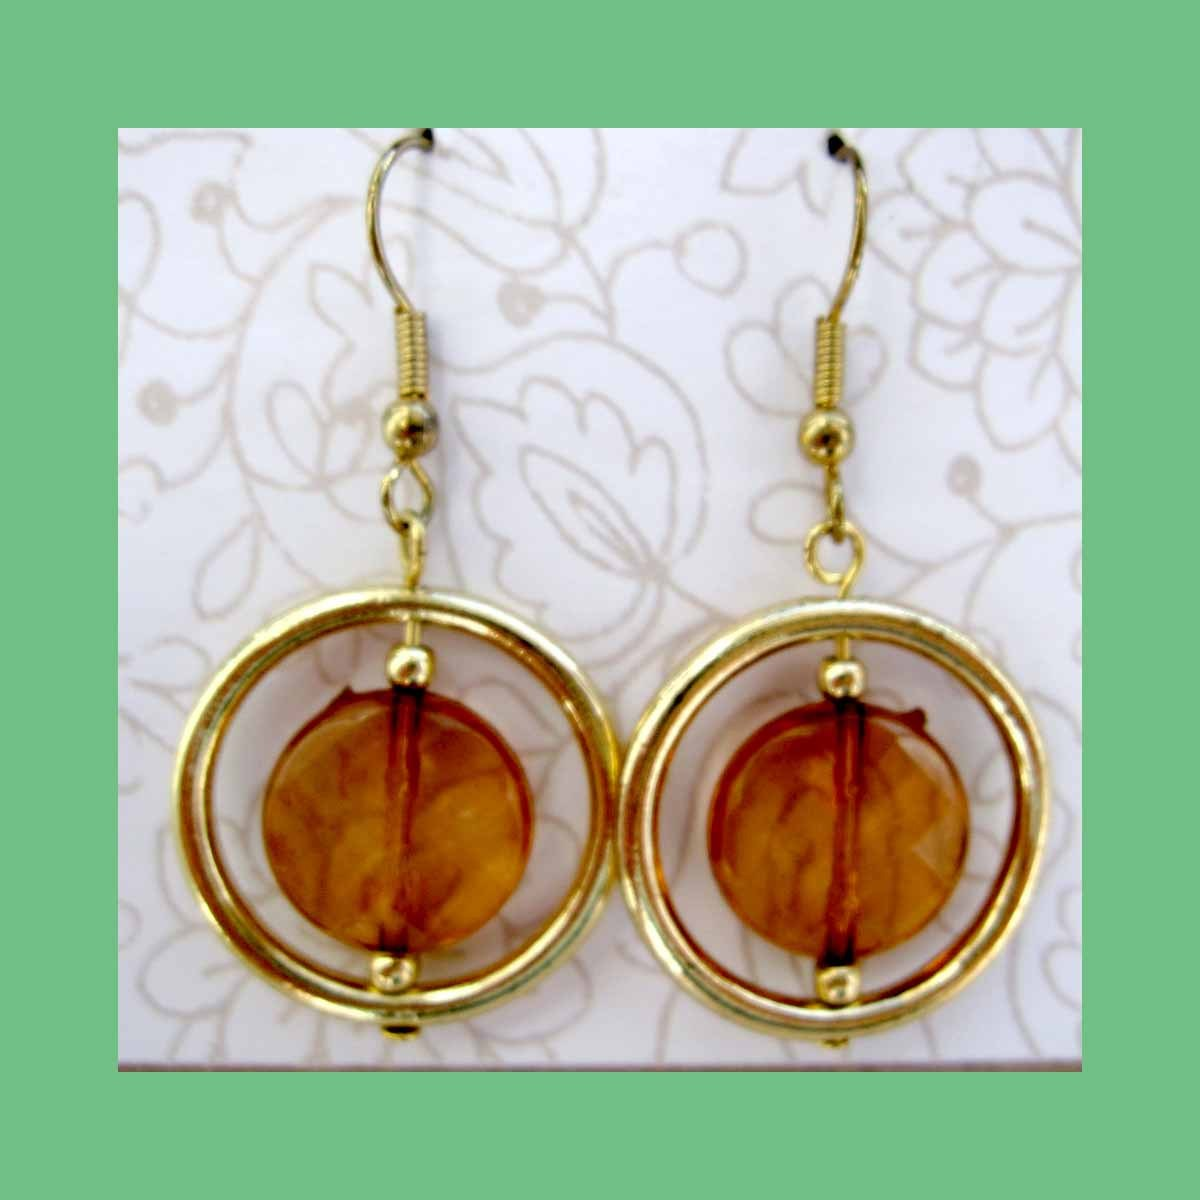 Fashion earrings round brown with gold circle